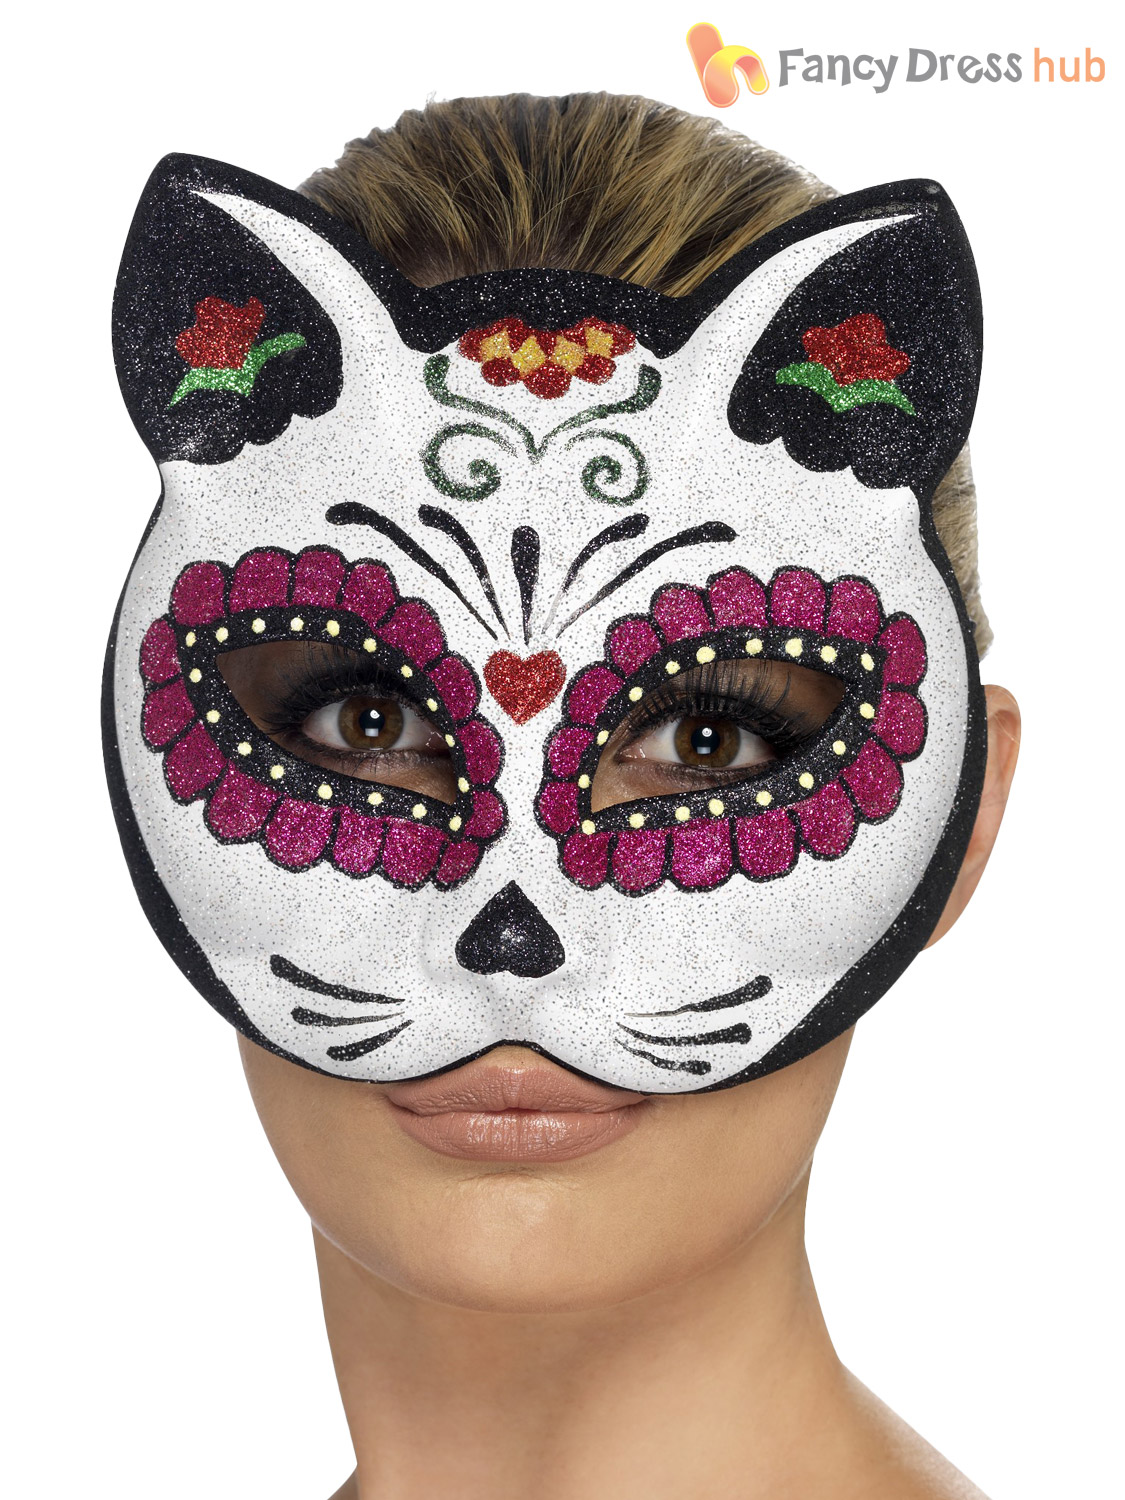 Mexican Day Of The Dead Masks Halloween Fancy Dress Costume Accessory Adult - eBay